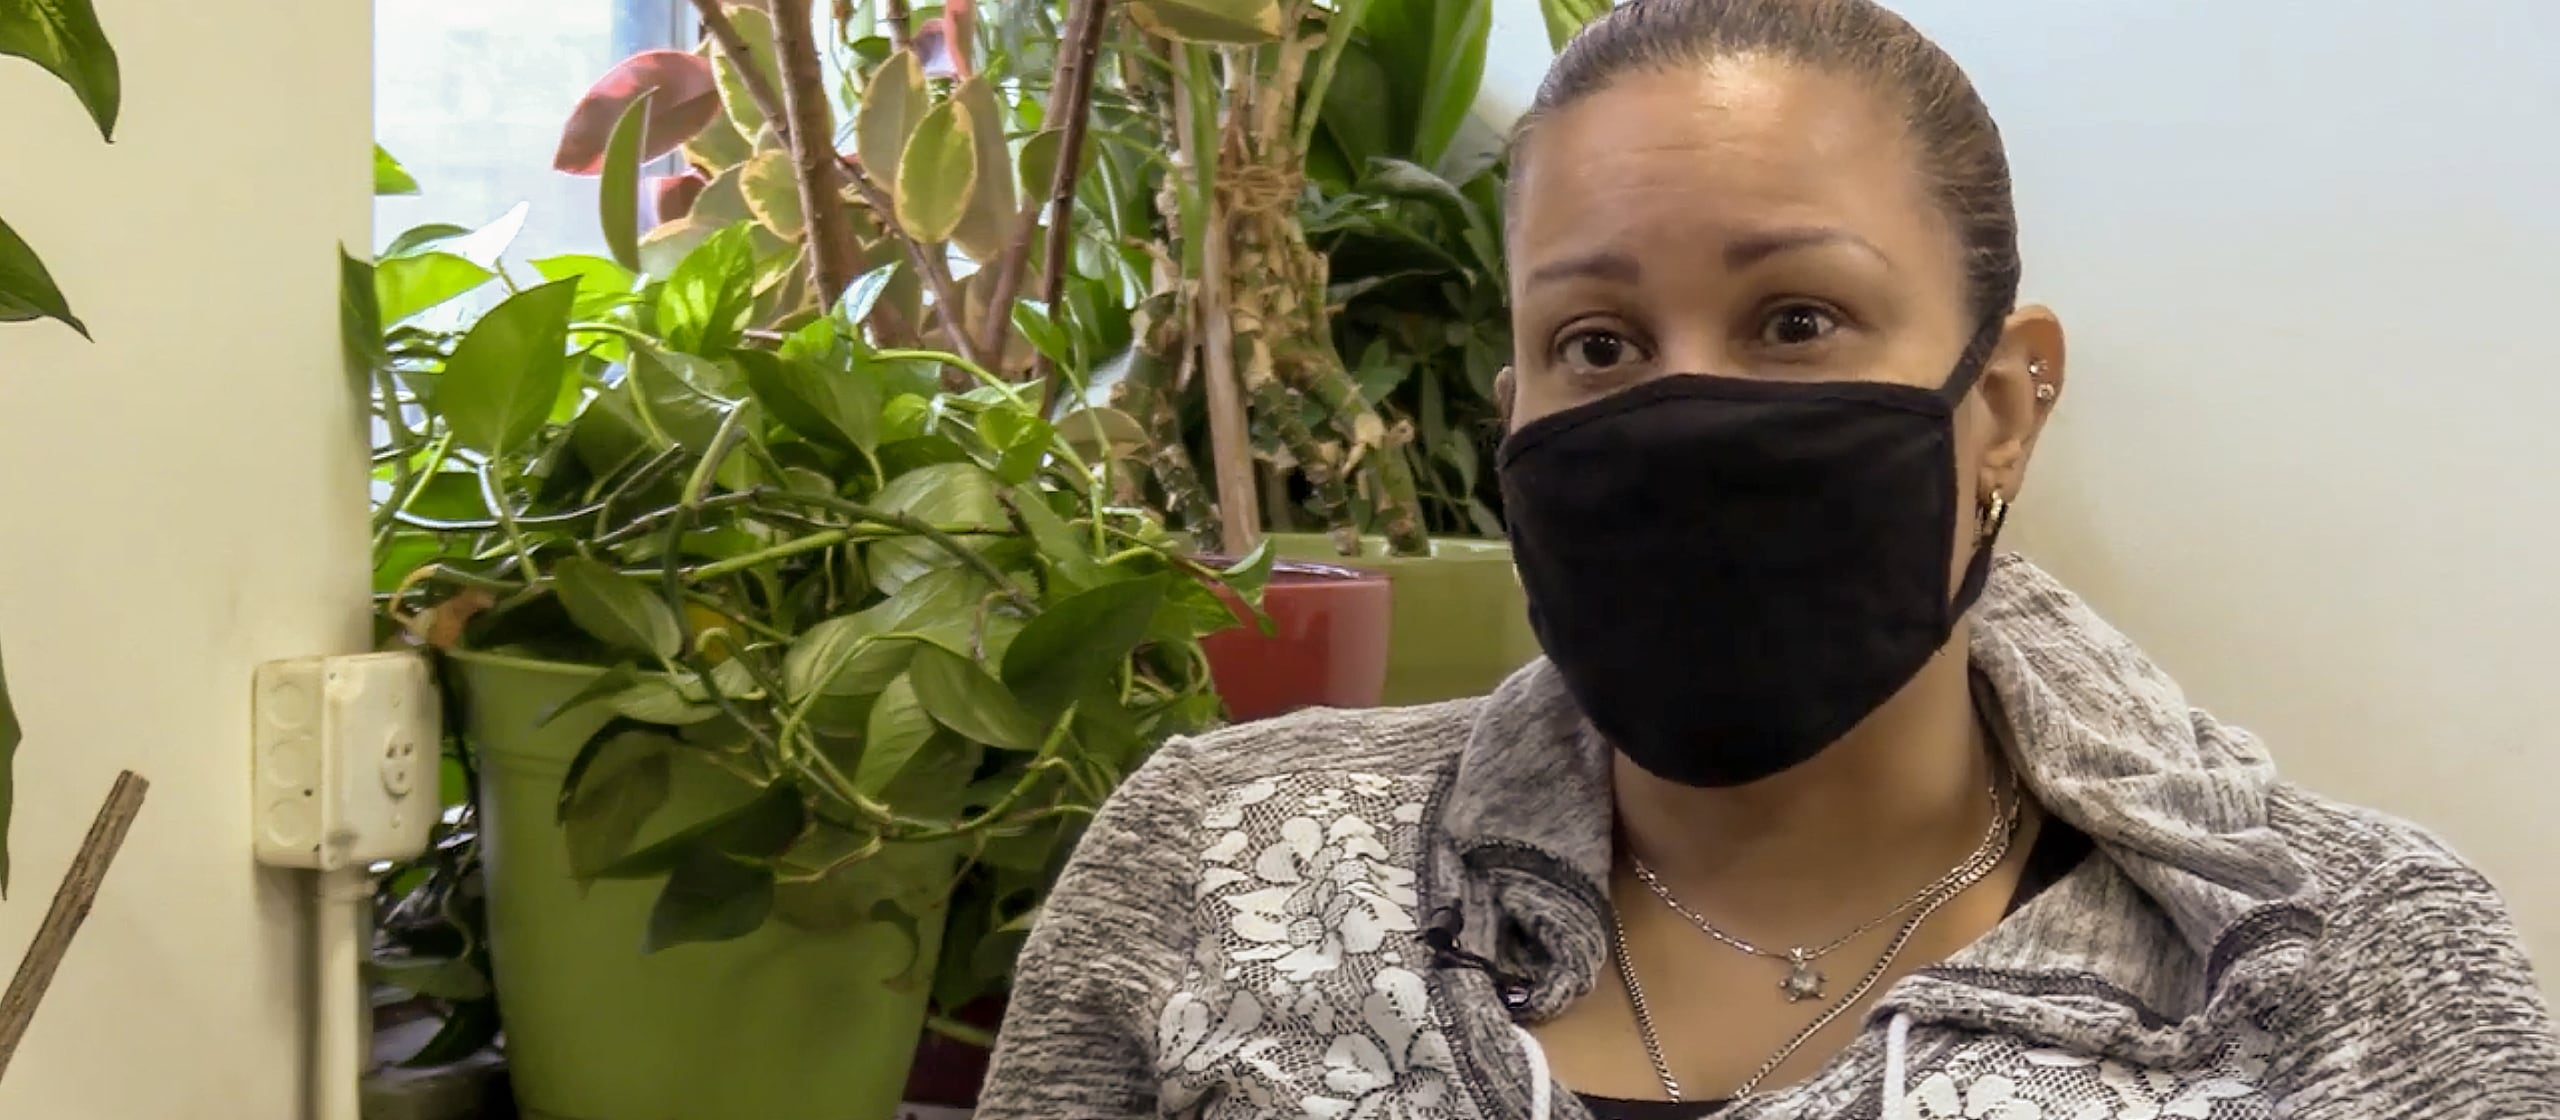 A woman looking into the camera with a black mask on.